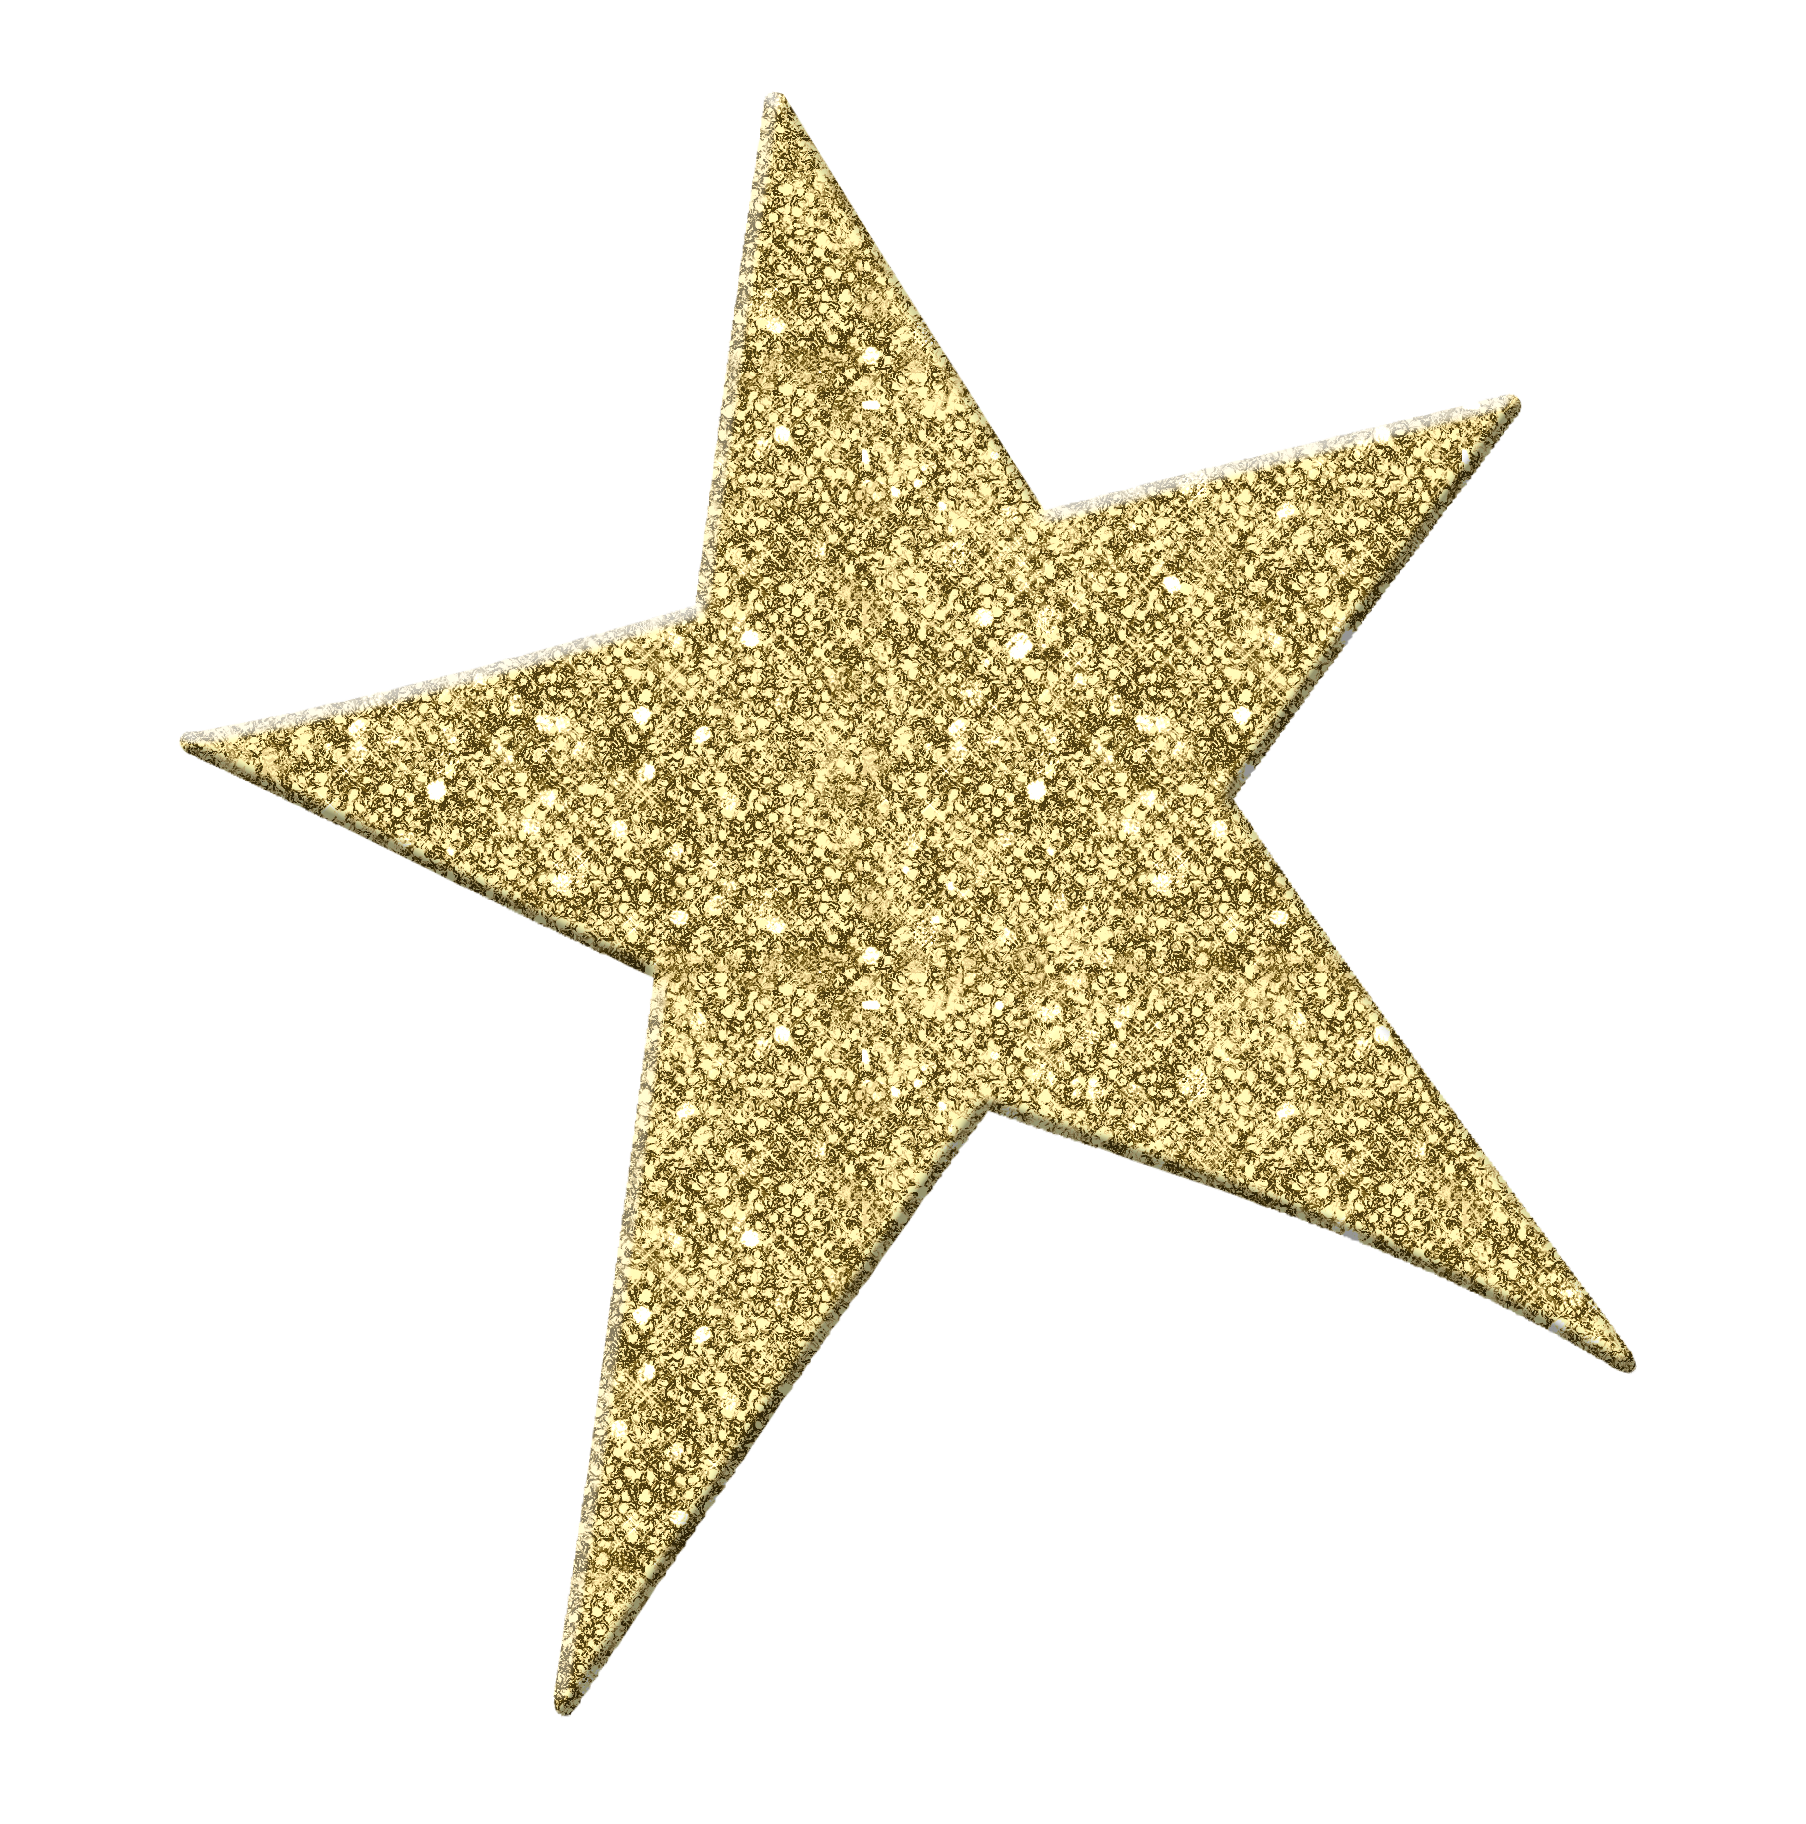 Gold Stars Png   ClipArt Best   ClipArt Best image #635